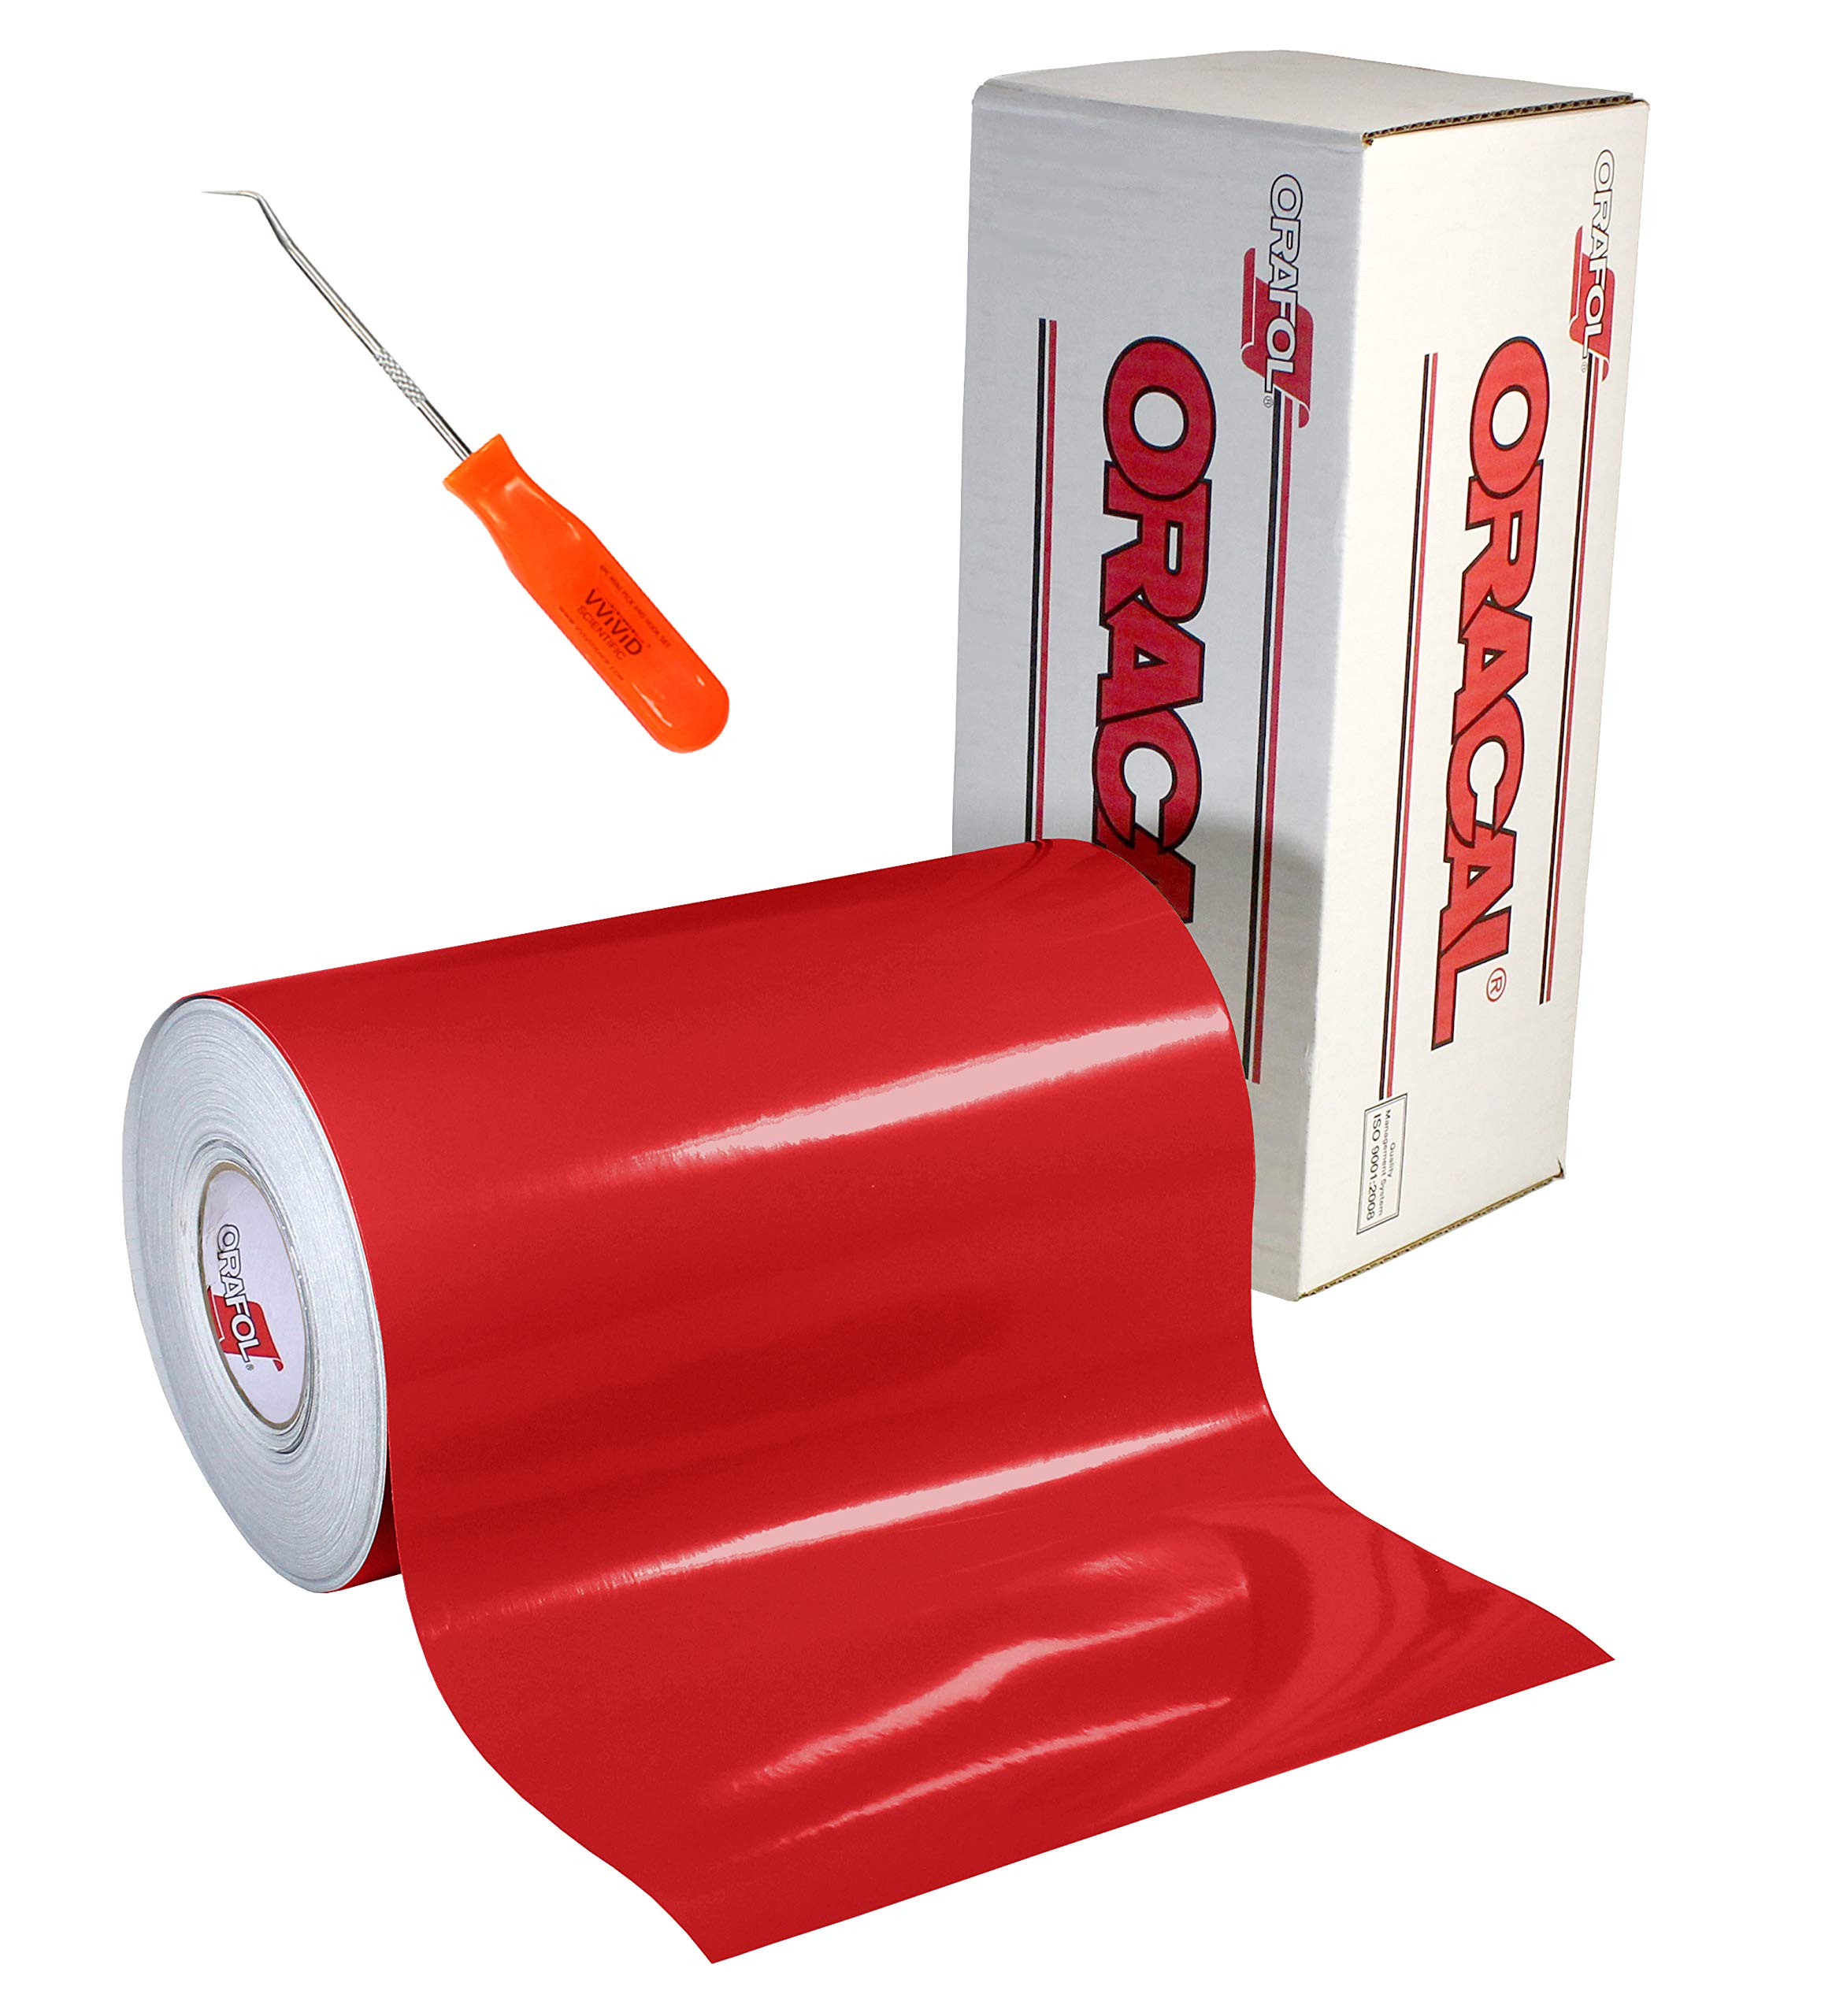 ORACAL 651 Gloss Red Self-Adhesive Craft Vinyl Roll (12'' x 30ft + Weeder)